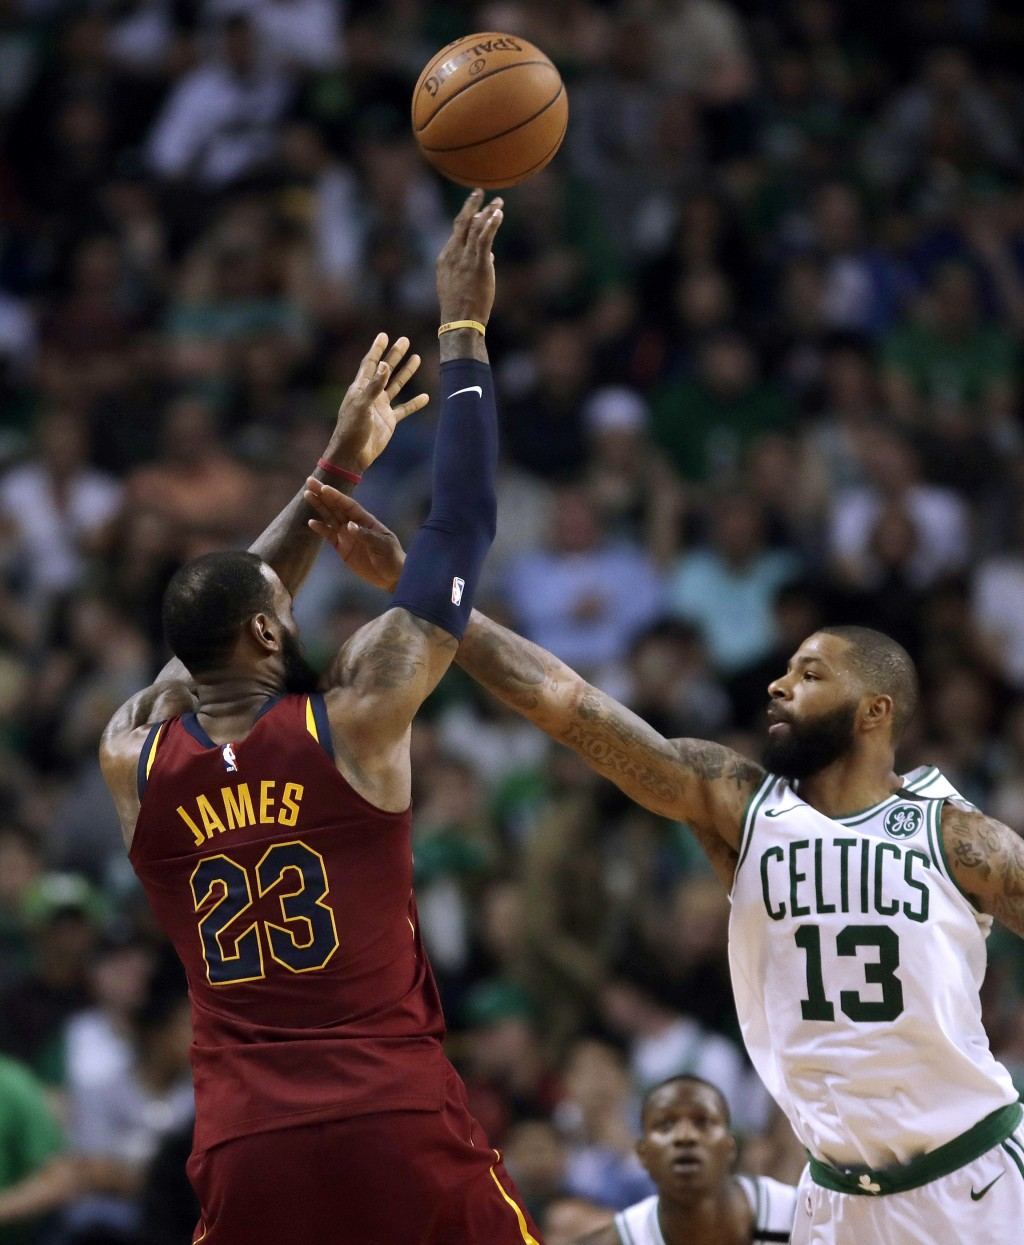 Cleveland Cavaliers forward LeBron James, left, shoots over Boston Celtics forward Marcus Morris during the second half in Game 2 of the NBA basketbal